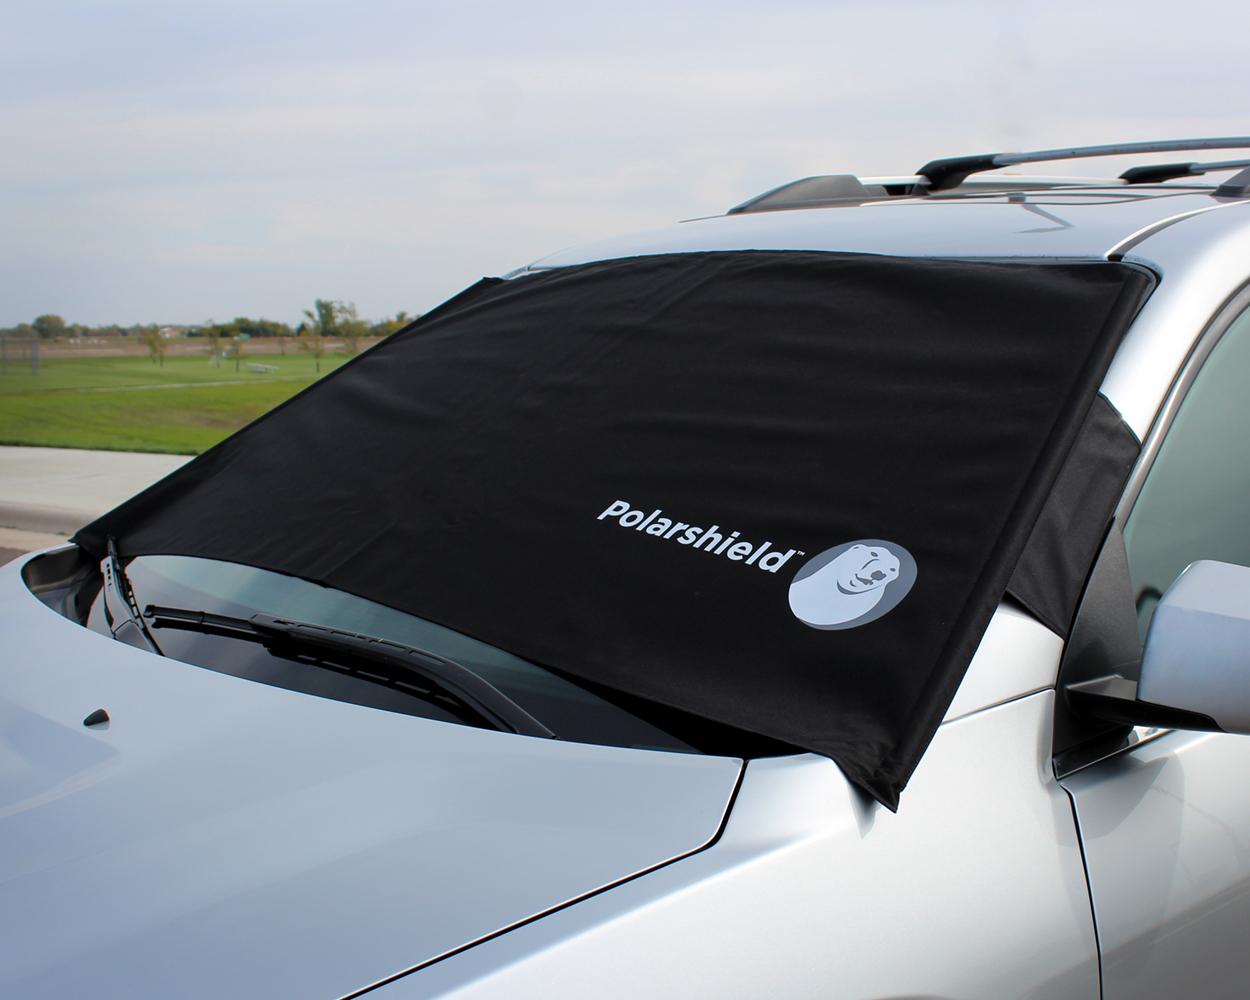 delk polarshield winter snow car wind proof windshield cover w security panels. Black Bedroom Furniture Sets. Home Design Ideas